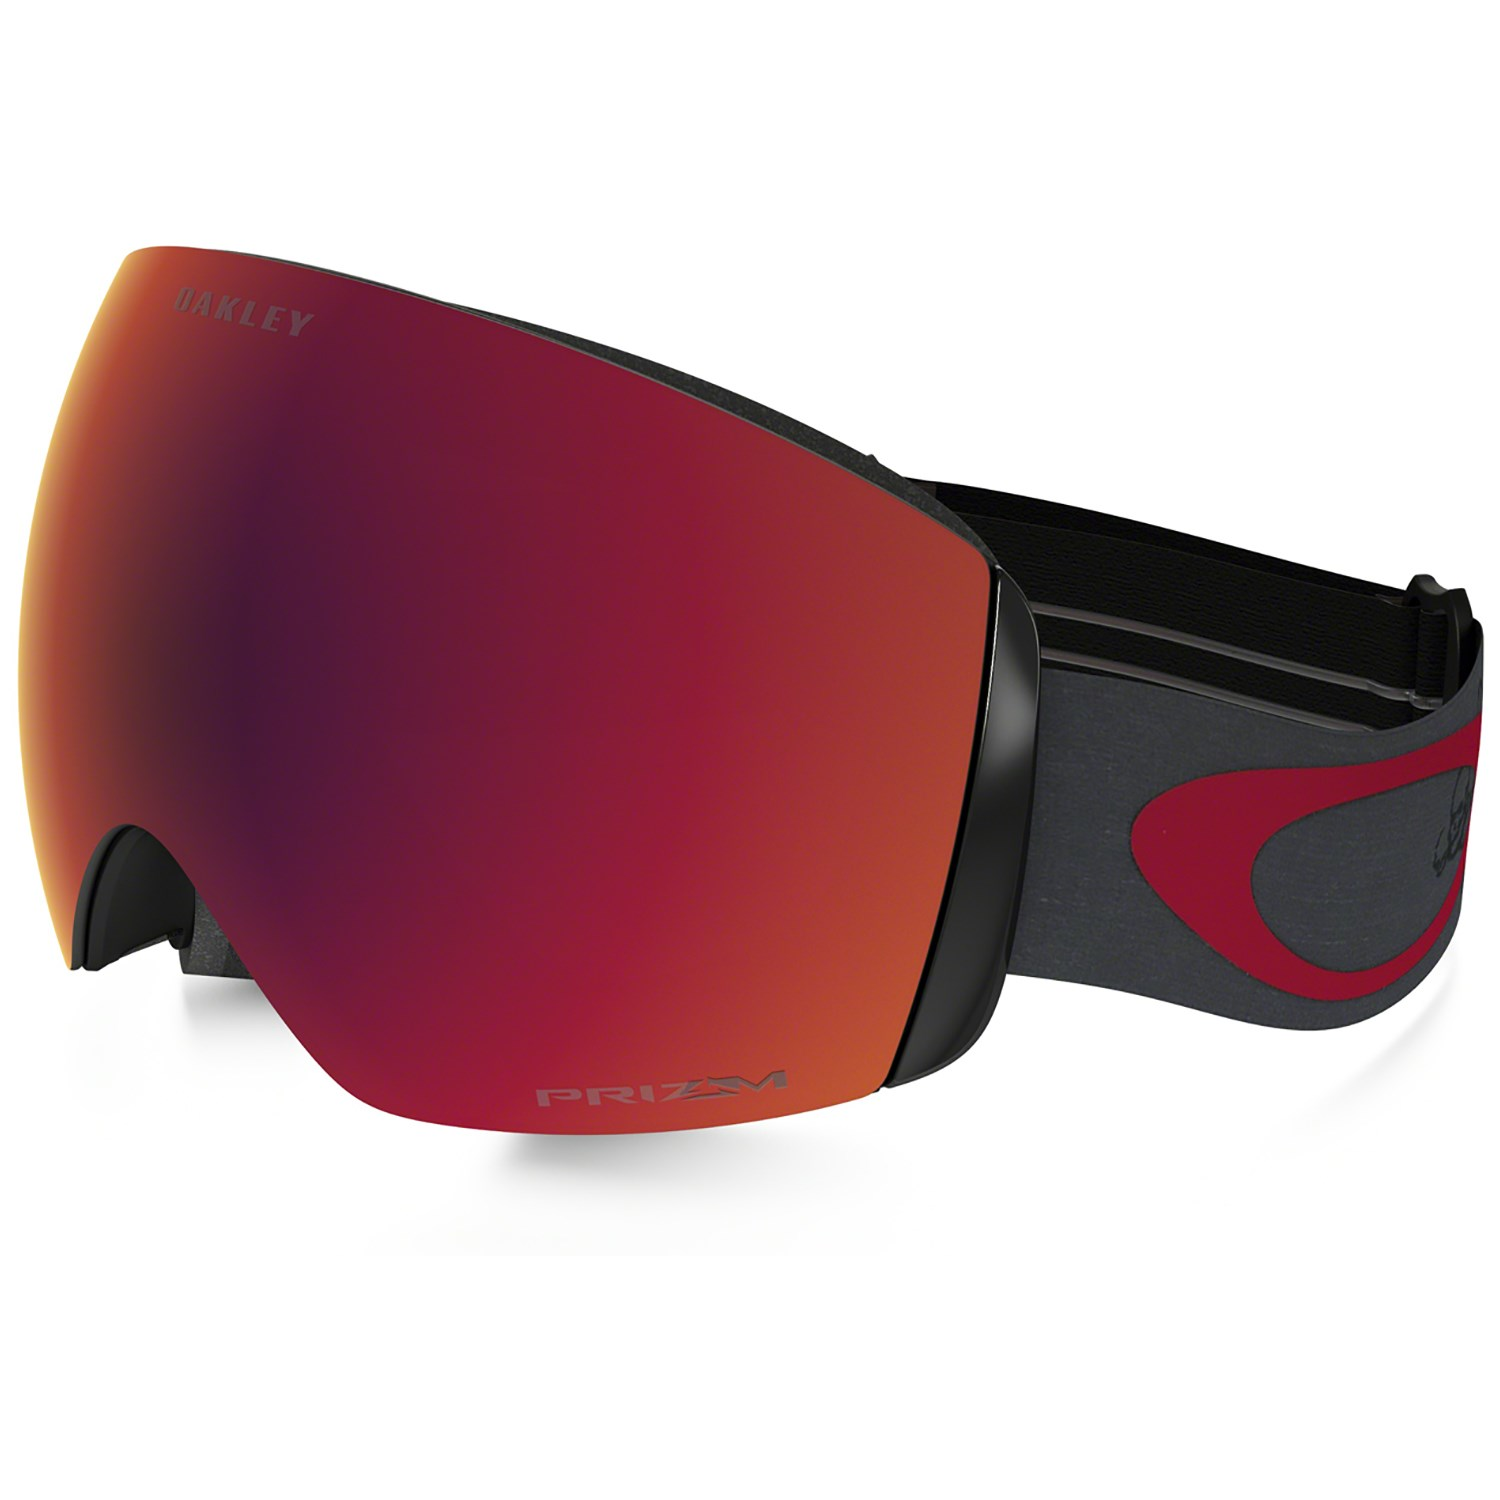 oakley goggles sale  oakley flight deck seth morrison goggles $210.00 $159.99 sale